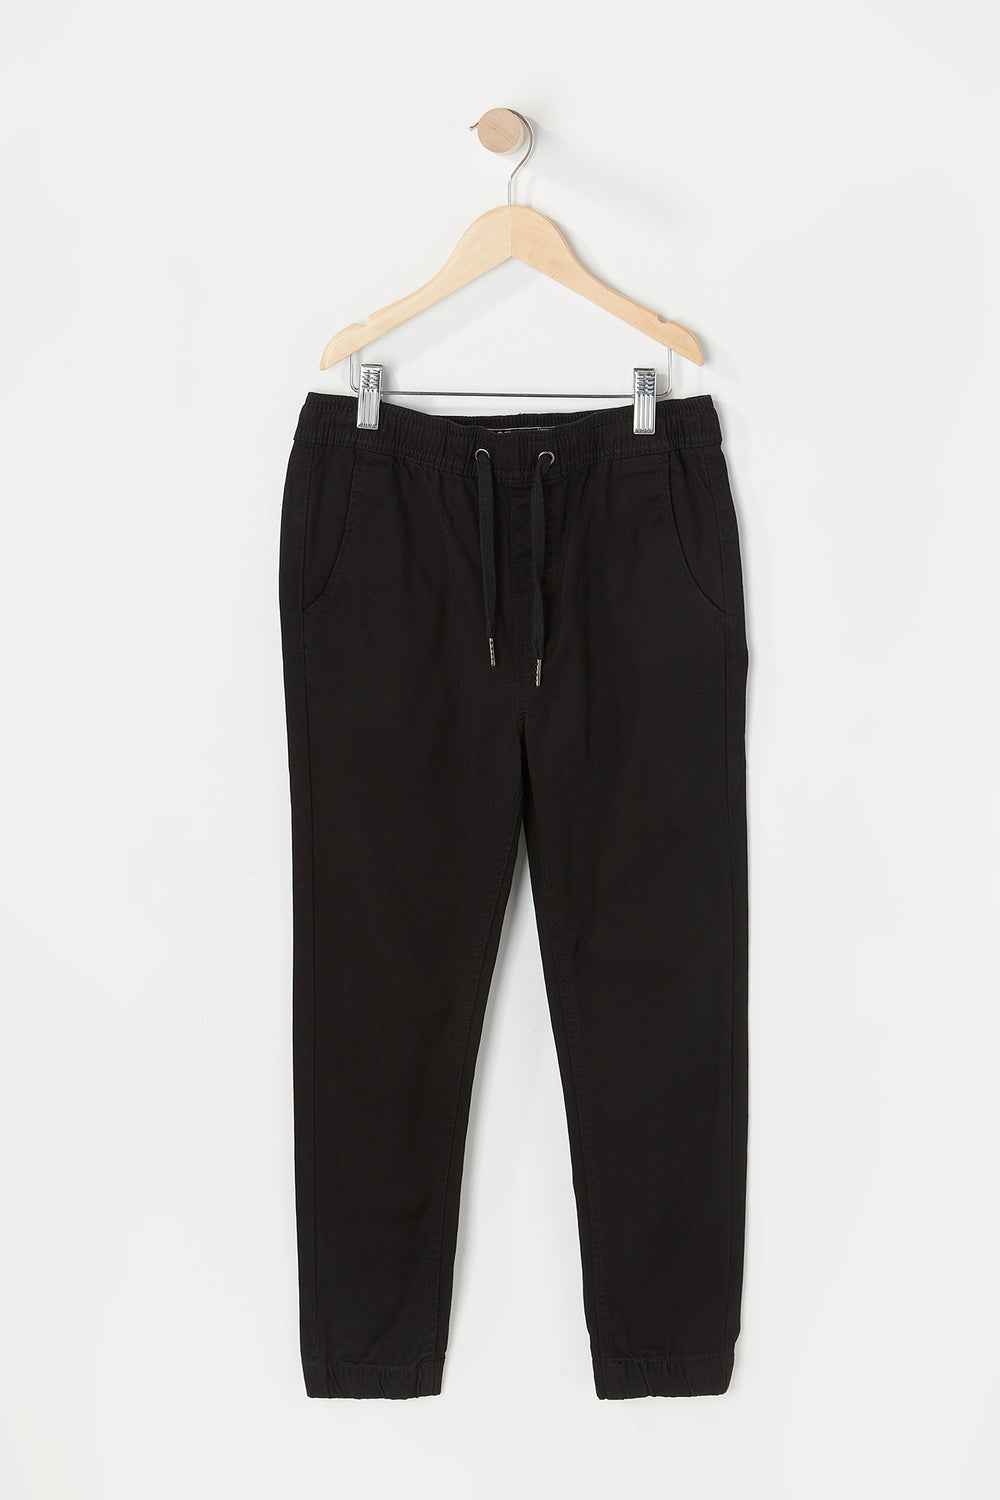 West49 Youth Jogger Black